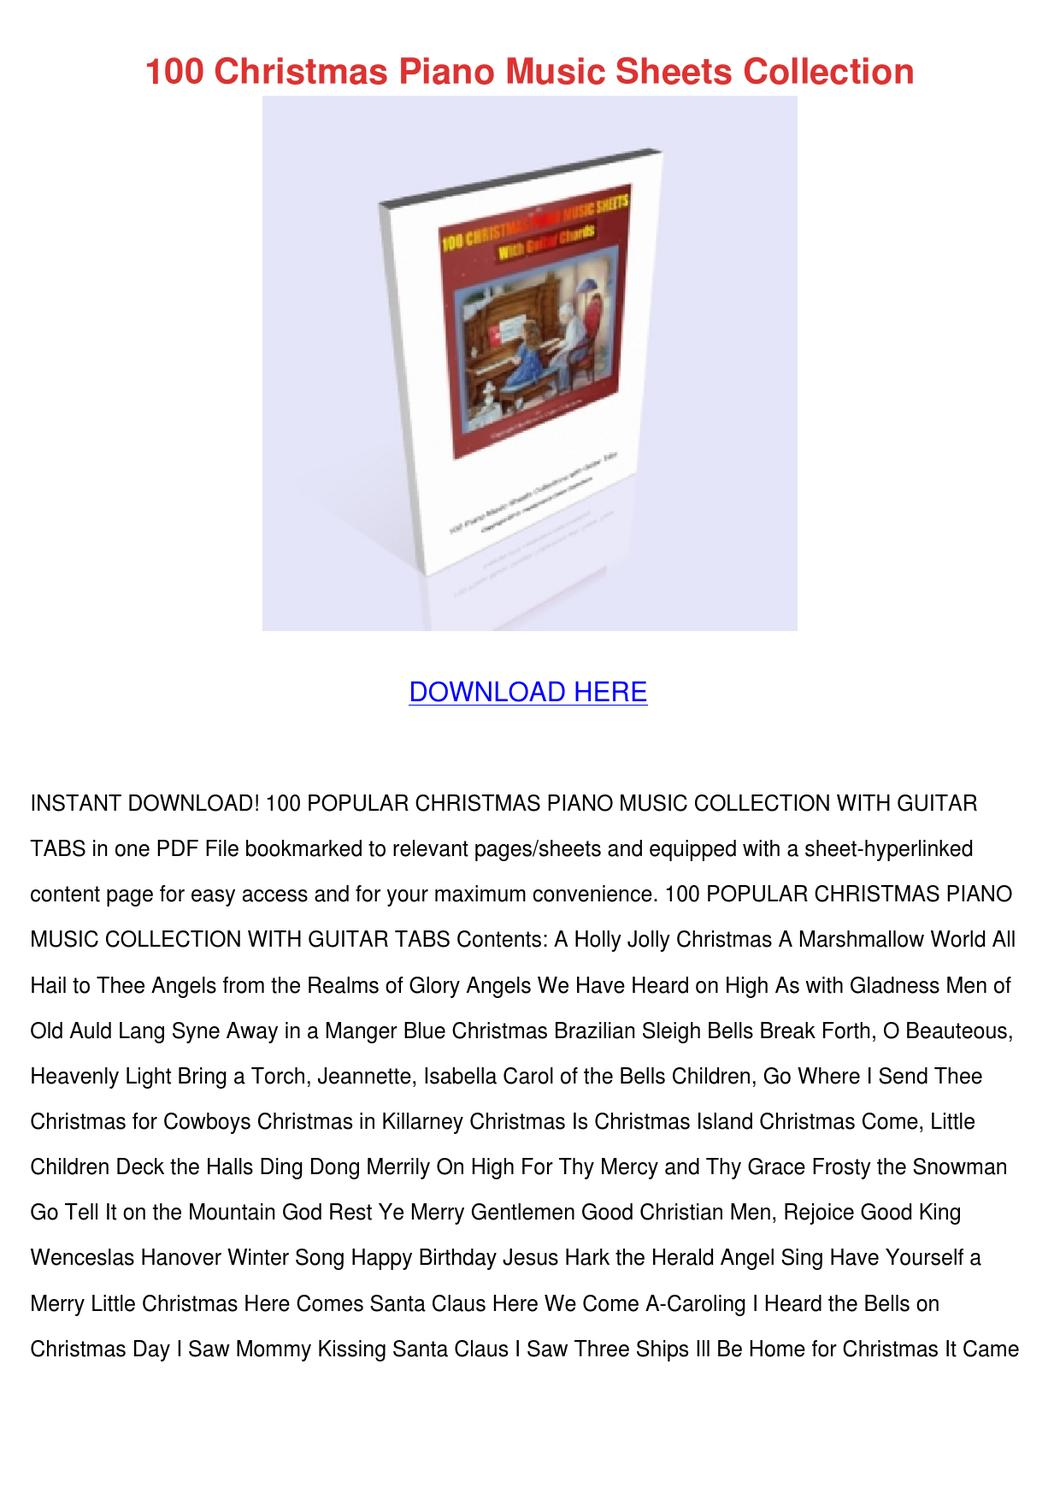 100 Christmas Piano Music Sheets Collection by Jane Hilse - issuu